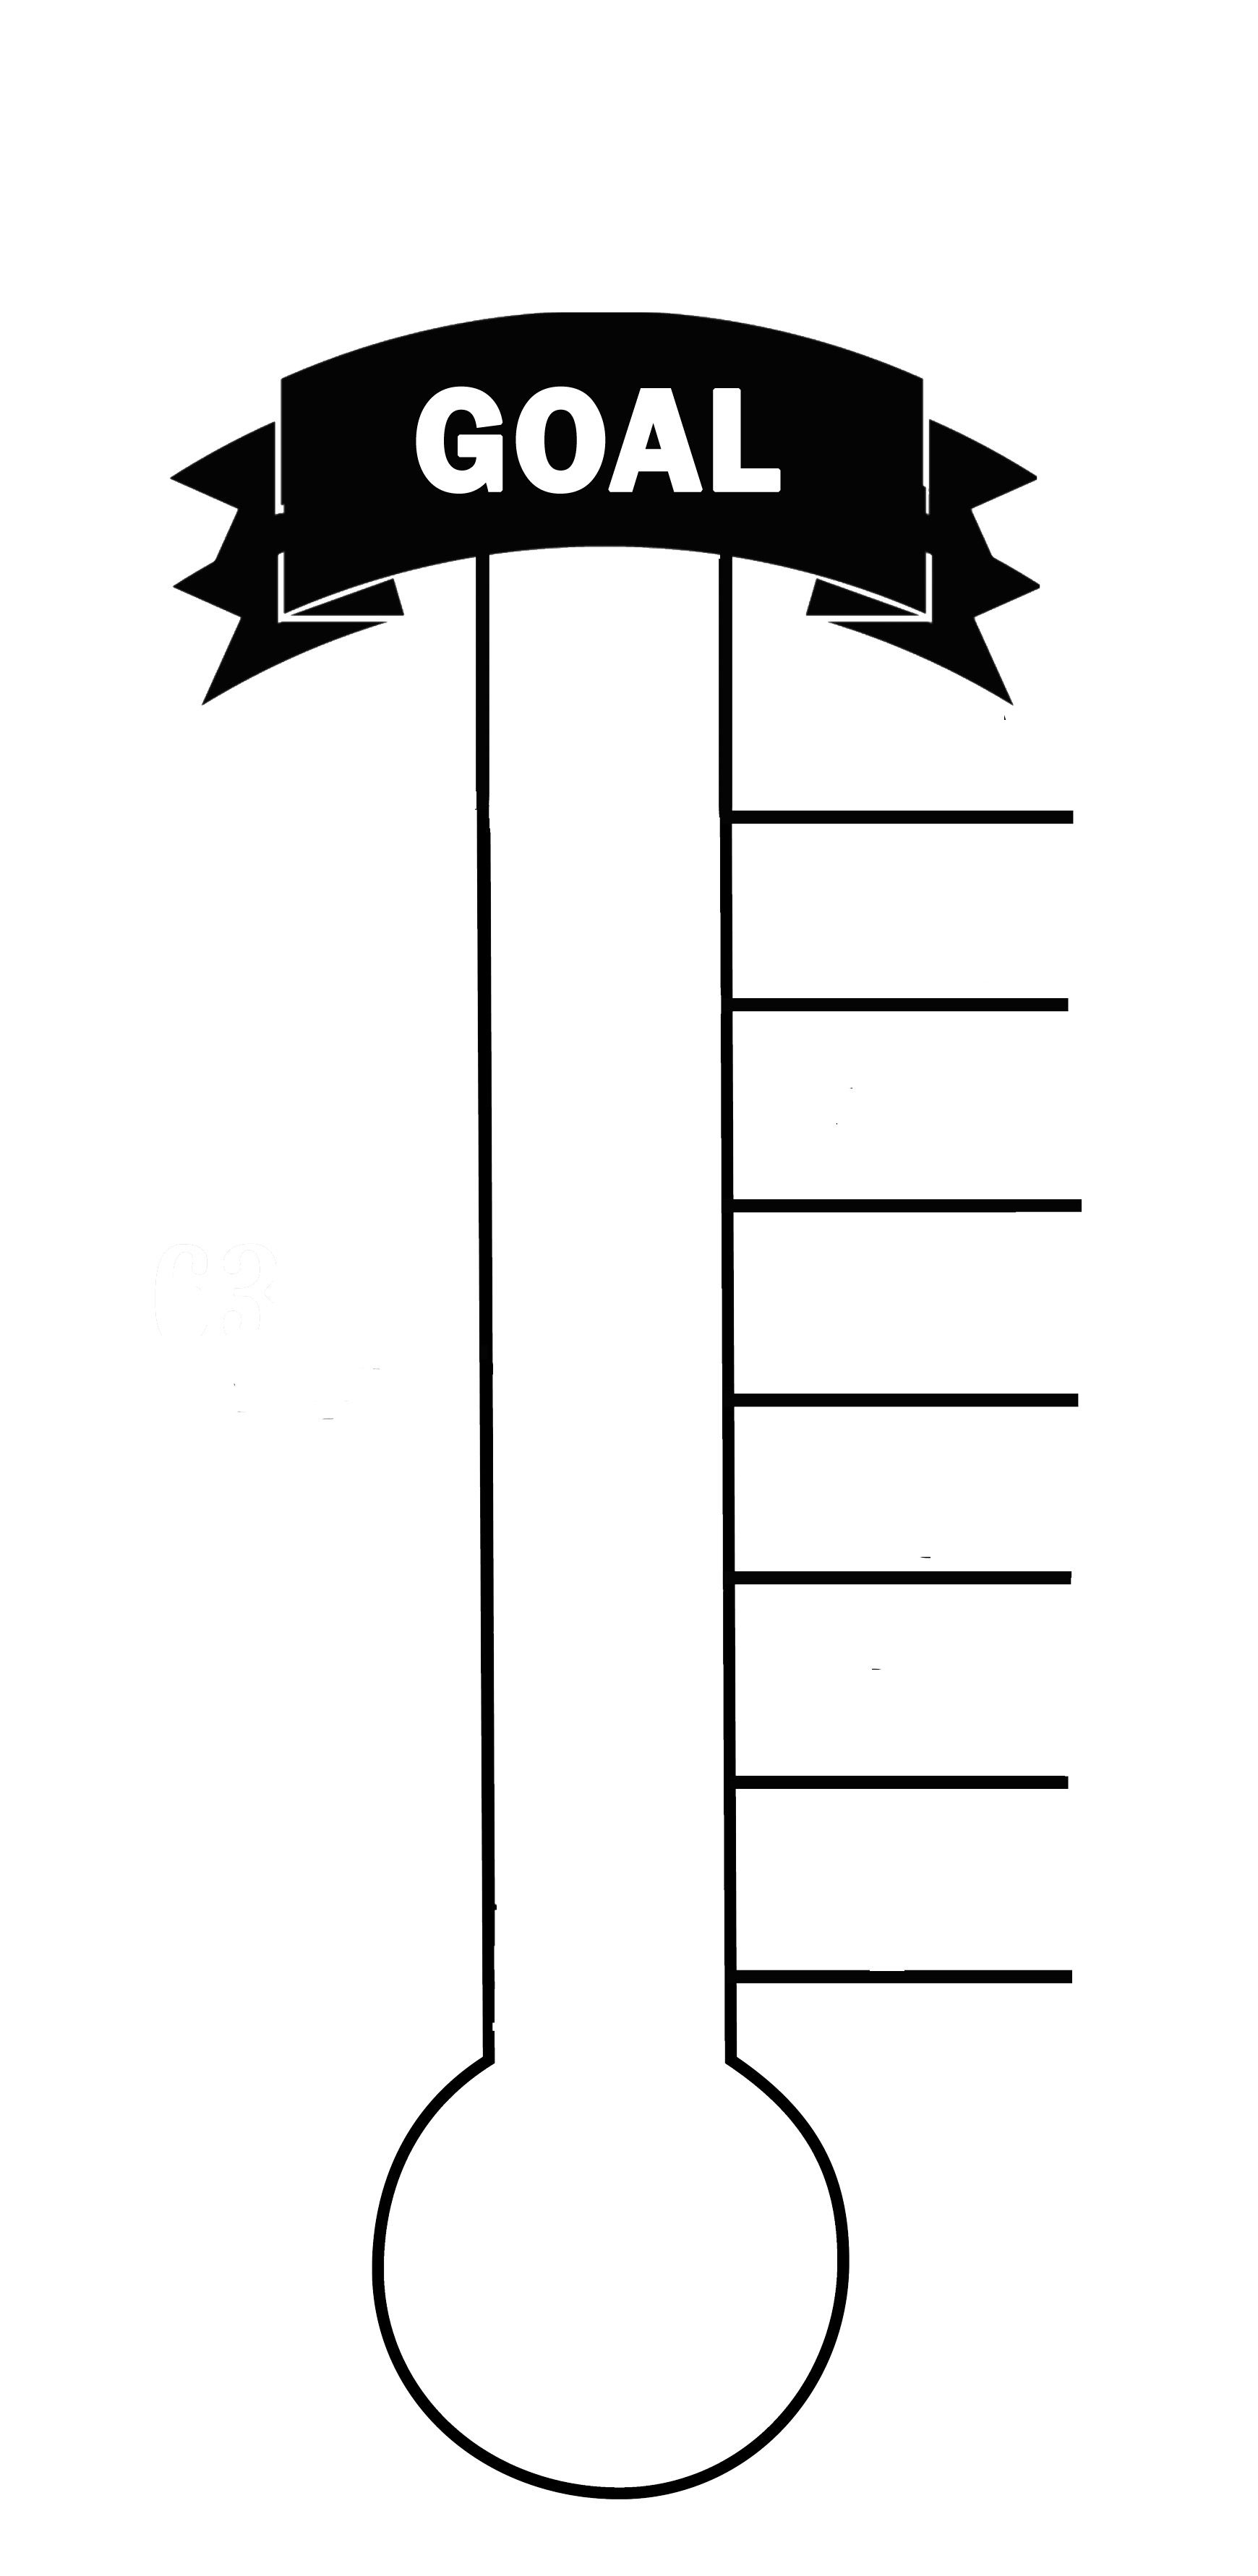 Fundraising thermometer: I think we could get more creative, but ...